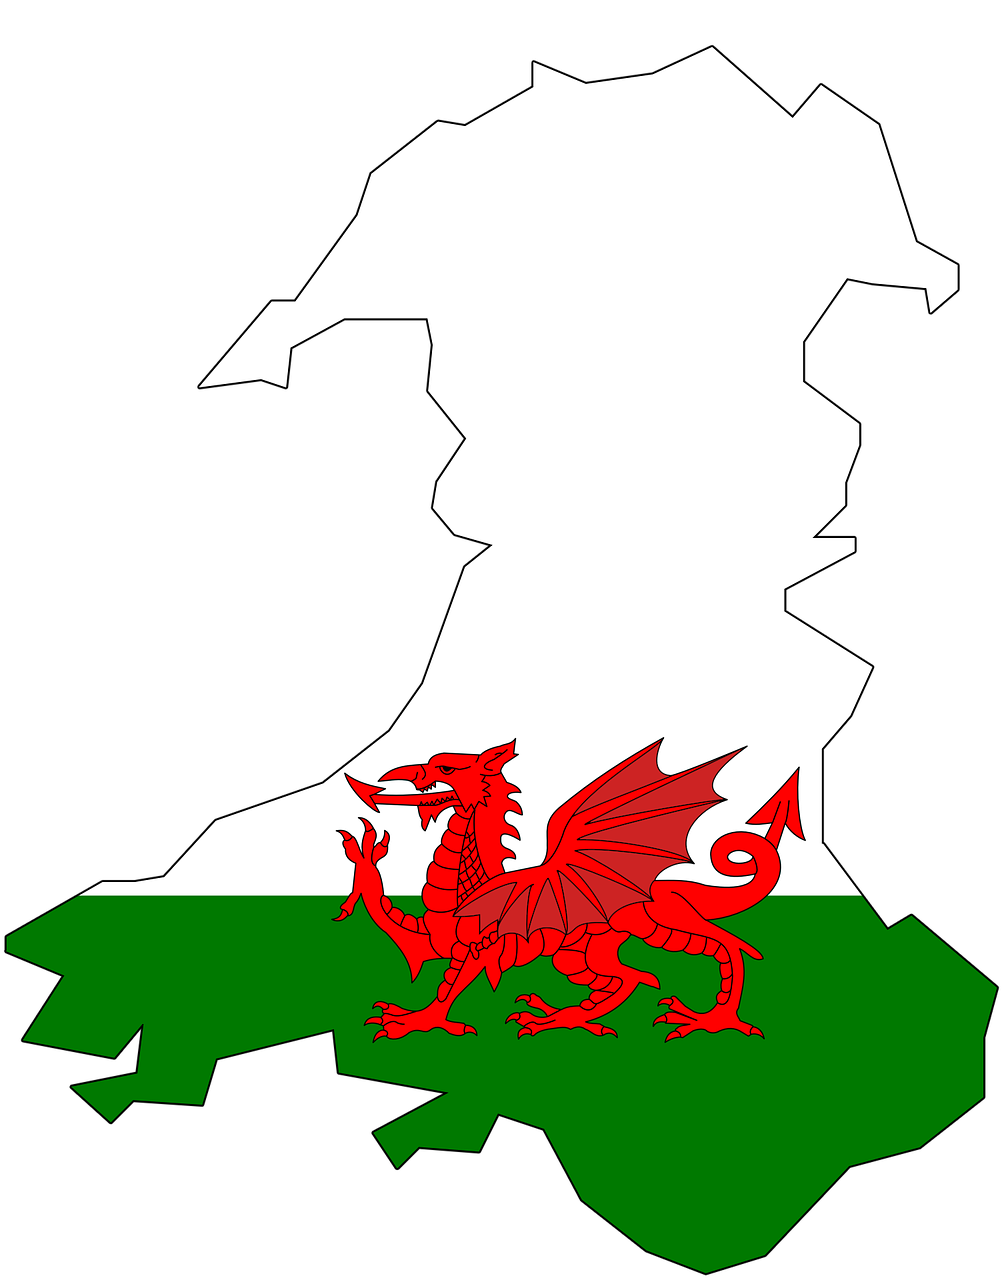 wales-1500761_1280.png